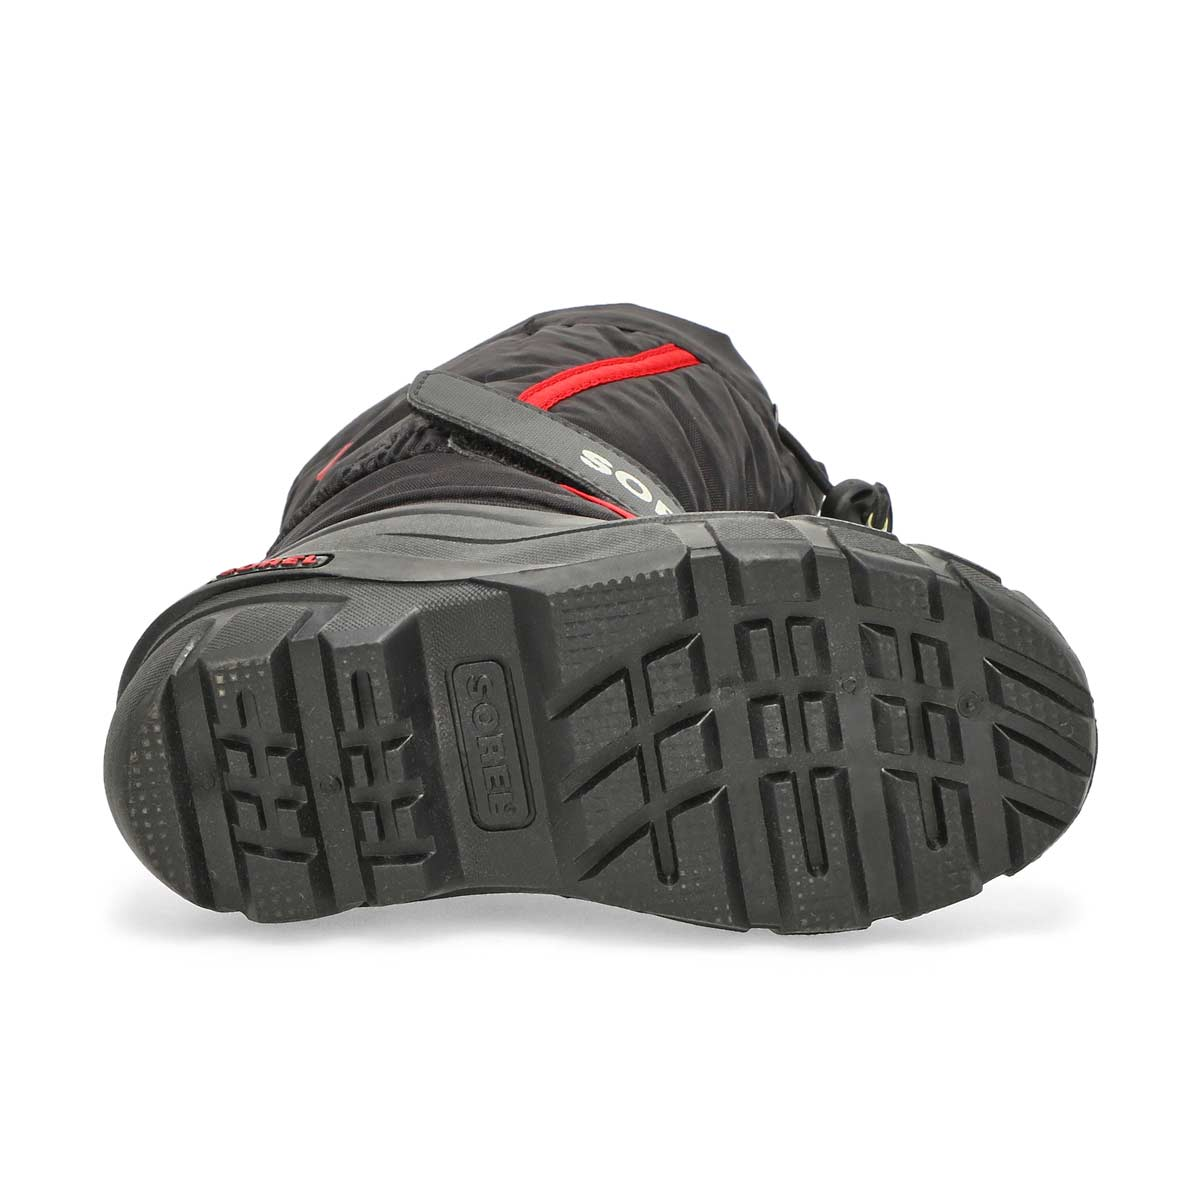 Bys Flurry blk/red pull on winter boot